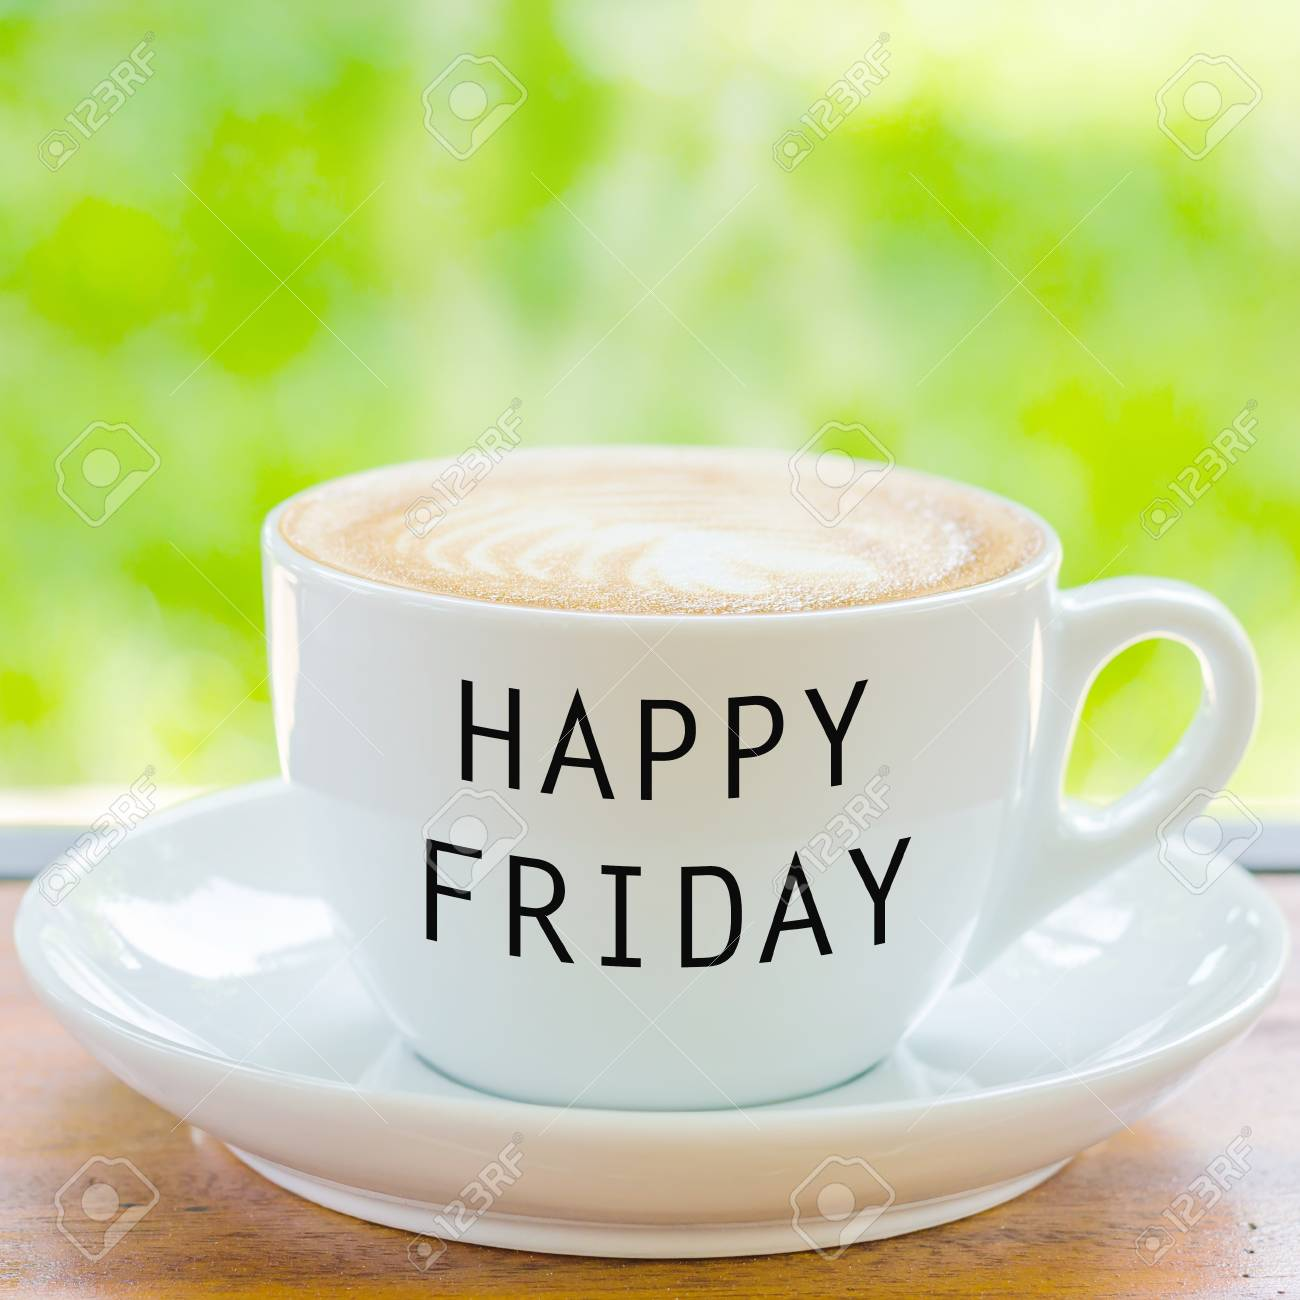 Happy Friday On Coffee Cup Stock Photo, Picture And Royalty Free ... #coffeeFriday